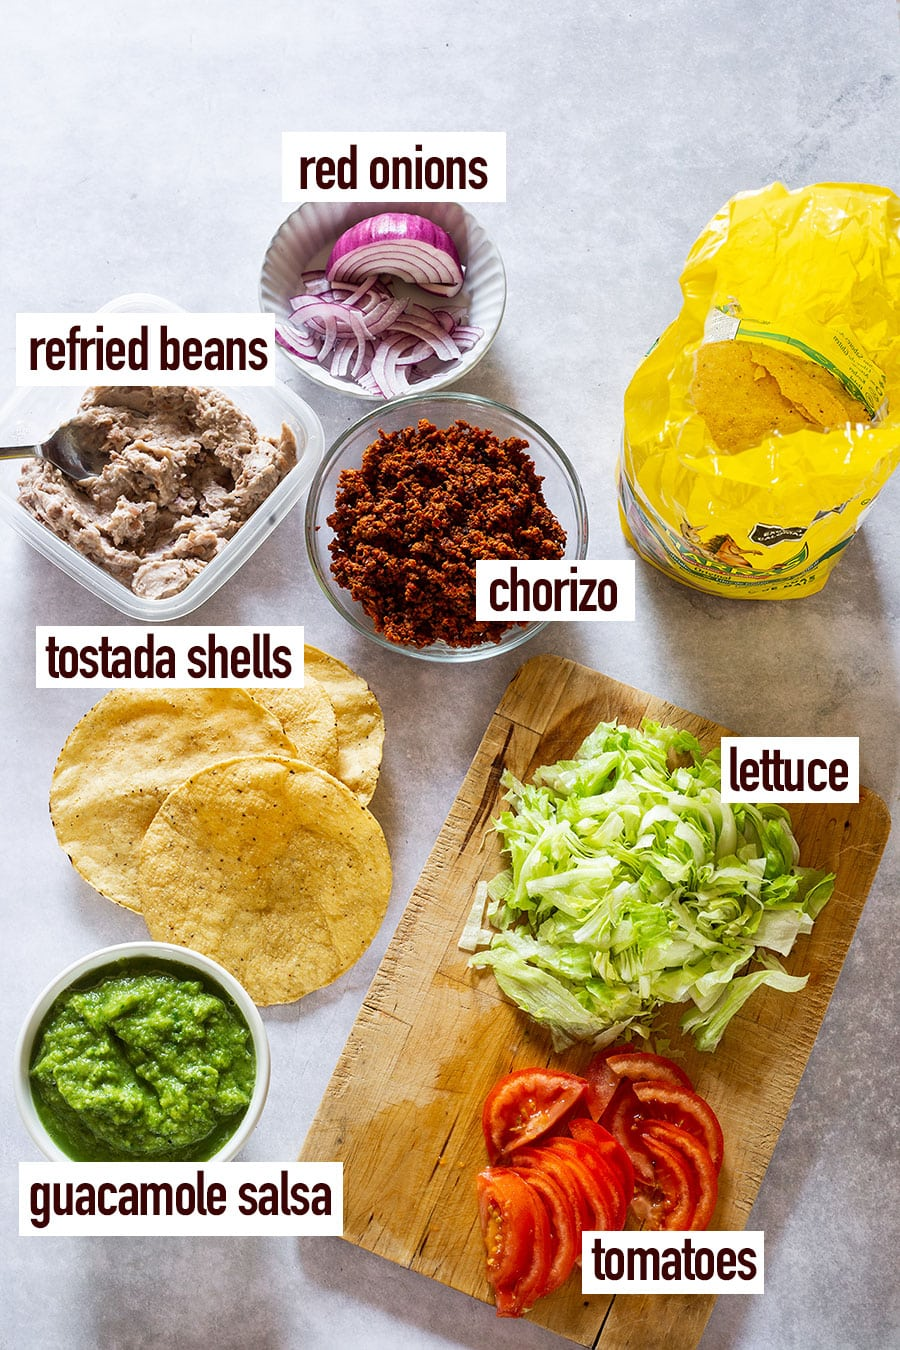 Tostadas toppings displayed on a concrete surface.